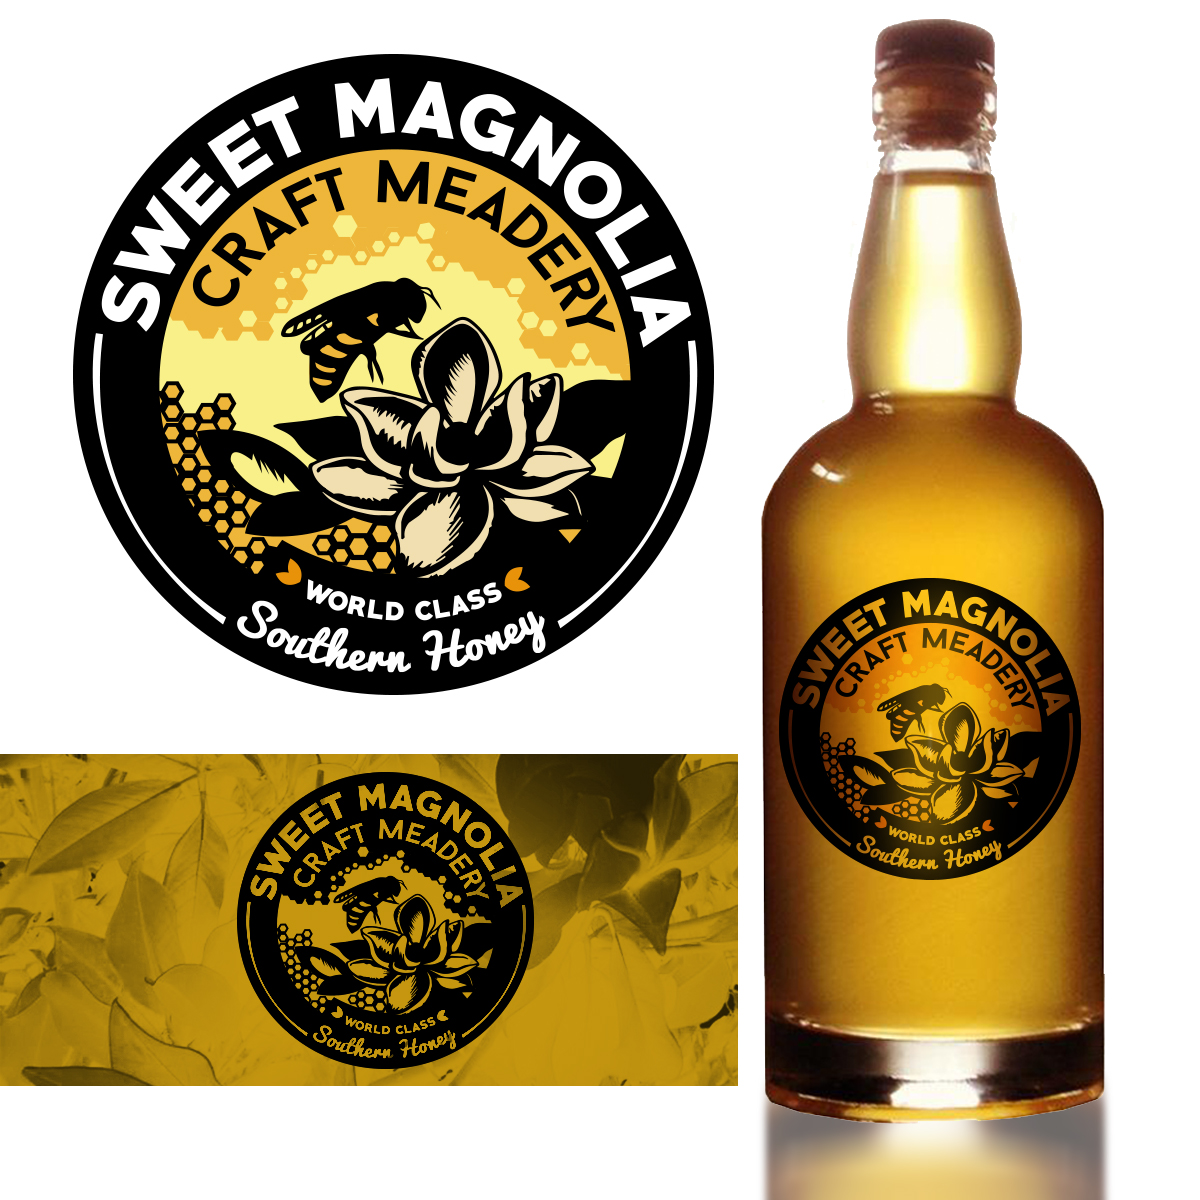 Magnolia Logo Design by Maddy McGrath for a Craft Honey Wine Company